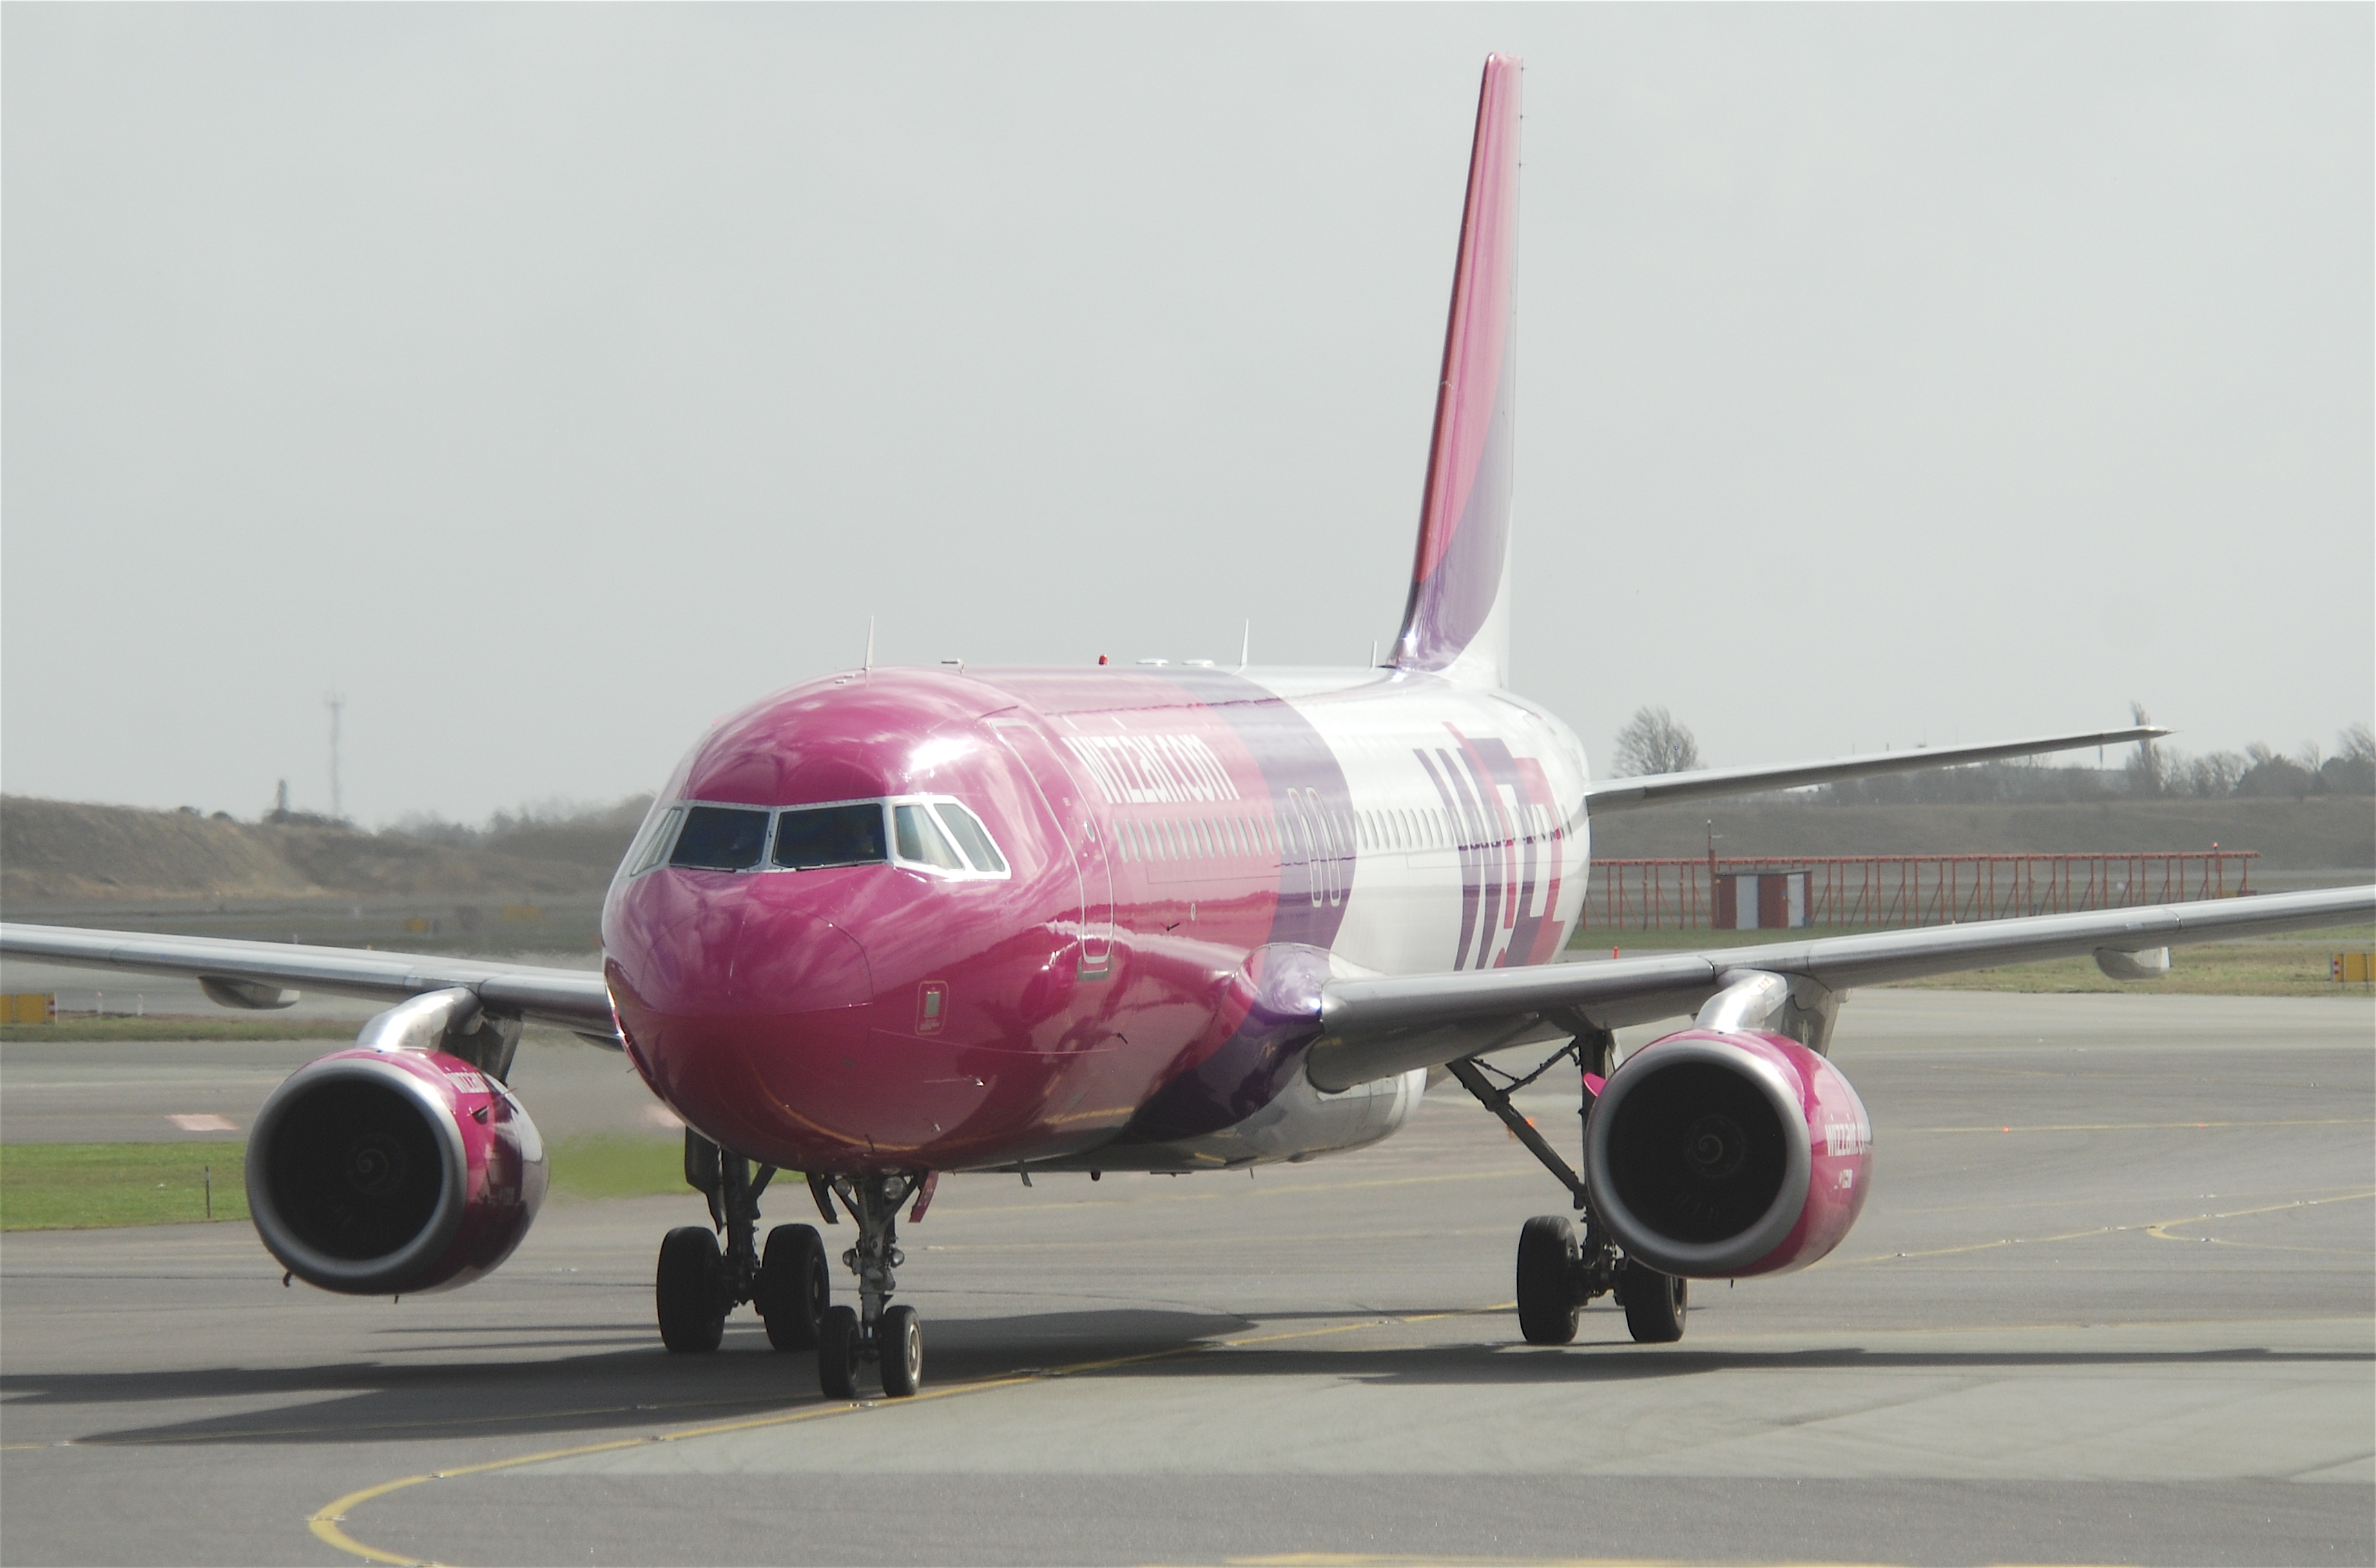 Wizz Air Airbus A320-200 (foto: Aero Icarus | Creative Commons 2.0)